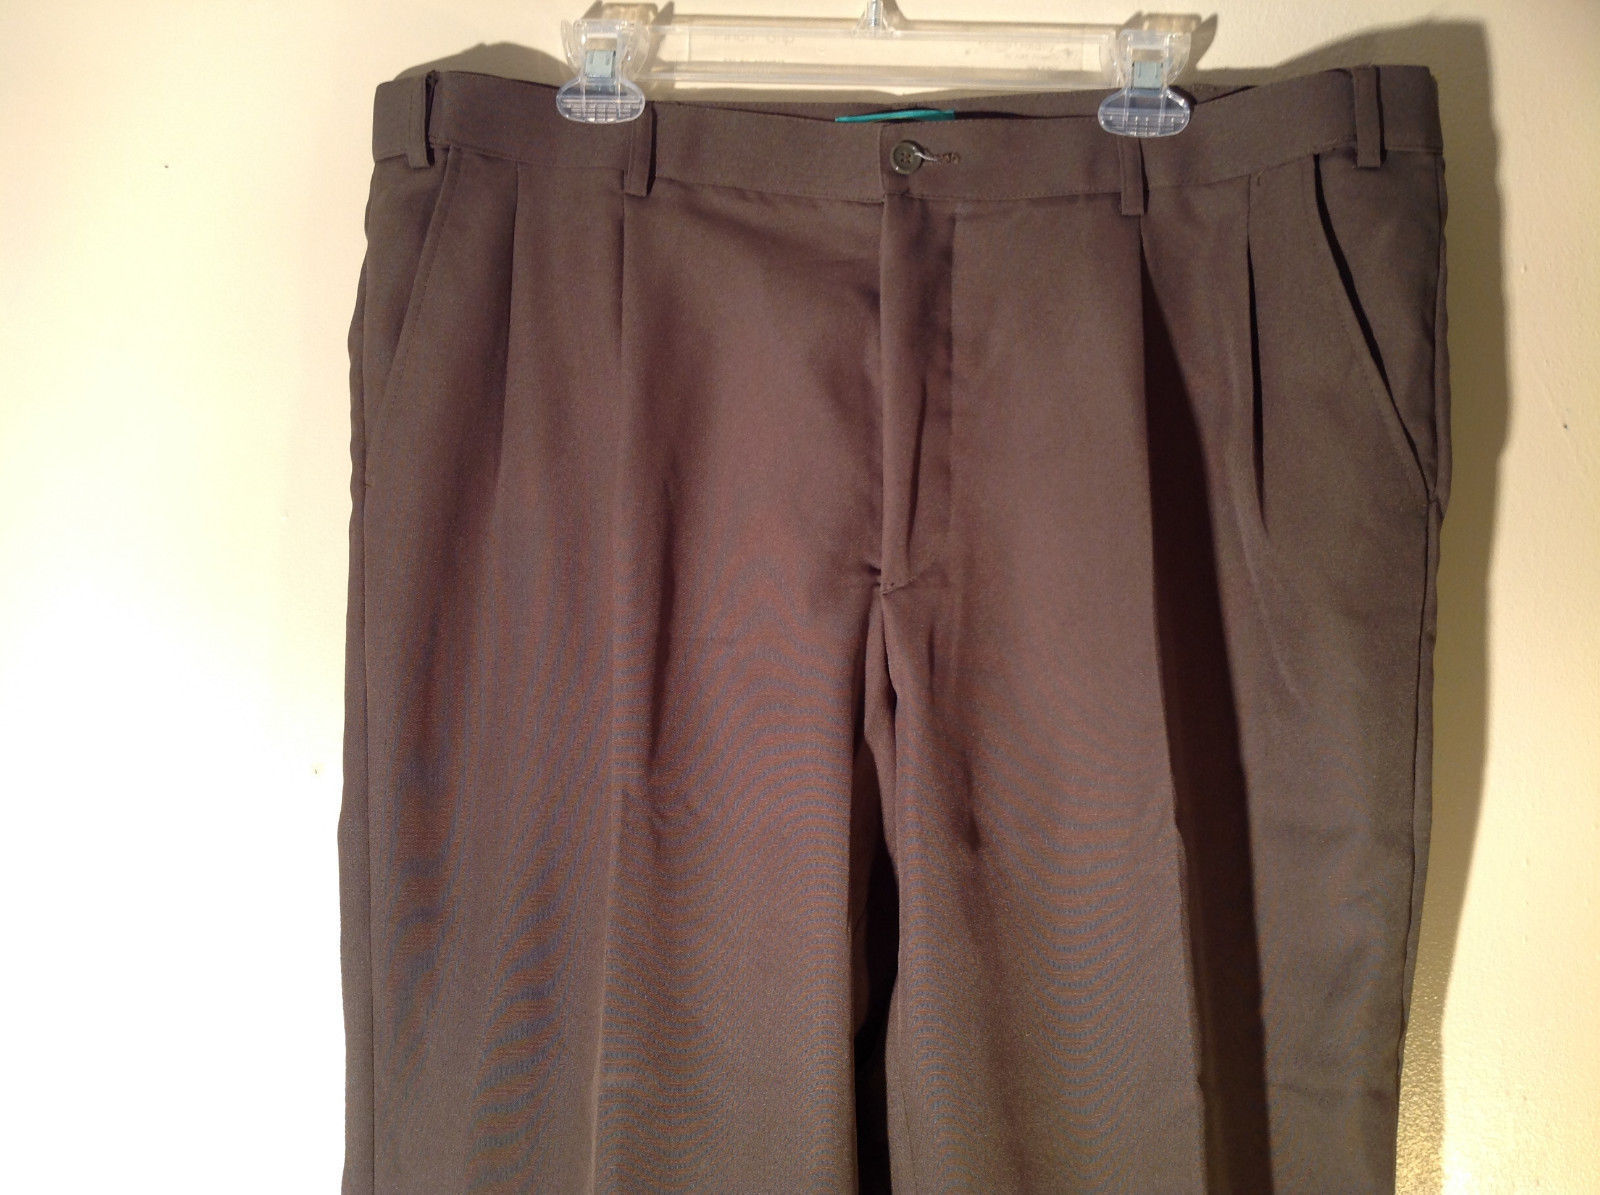 Habands Fit Forever Gray with a Very Subtle Green Dress Pants Size 40 XS